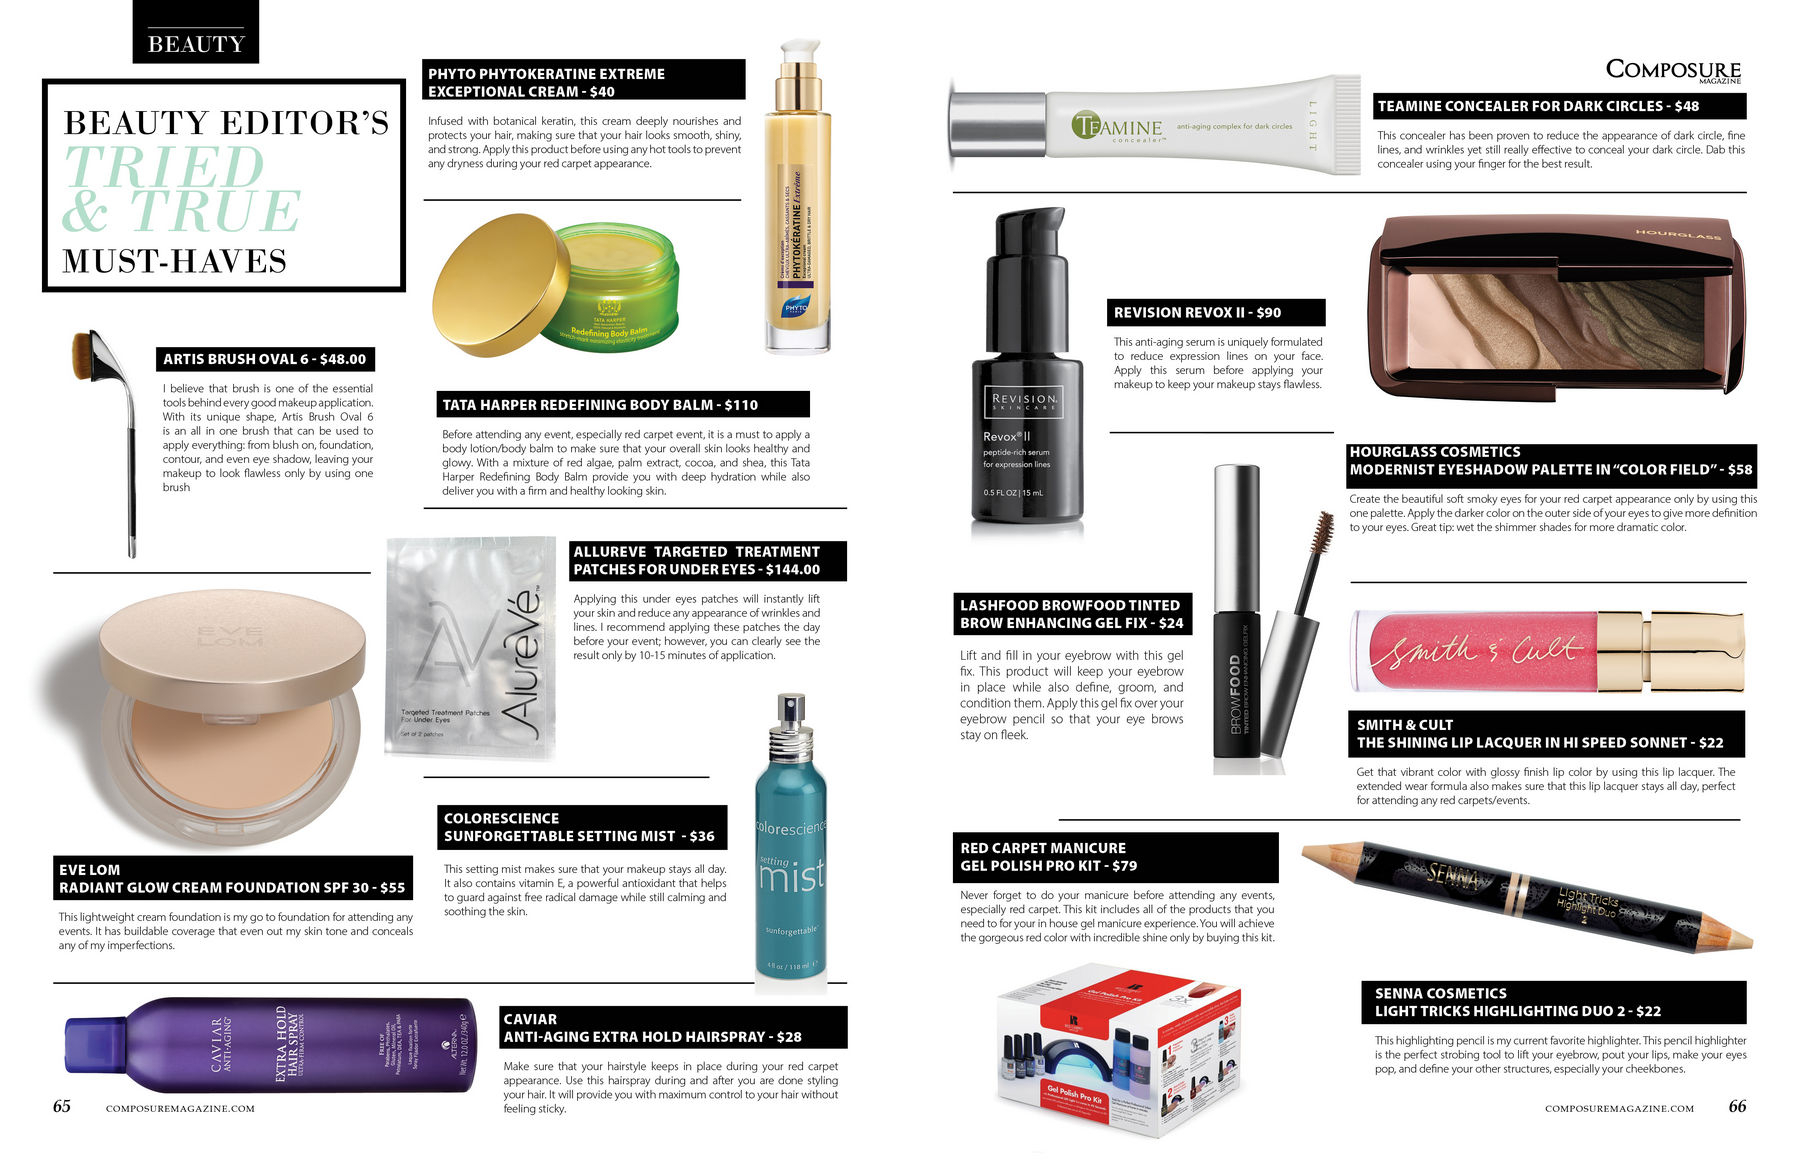 Beauty Editor's Tried and True Must Have's product and reviews